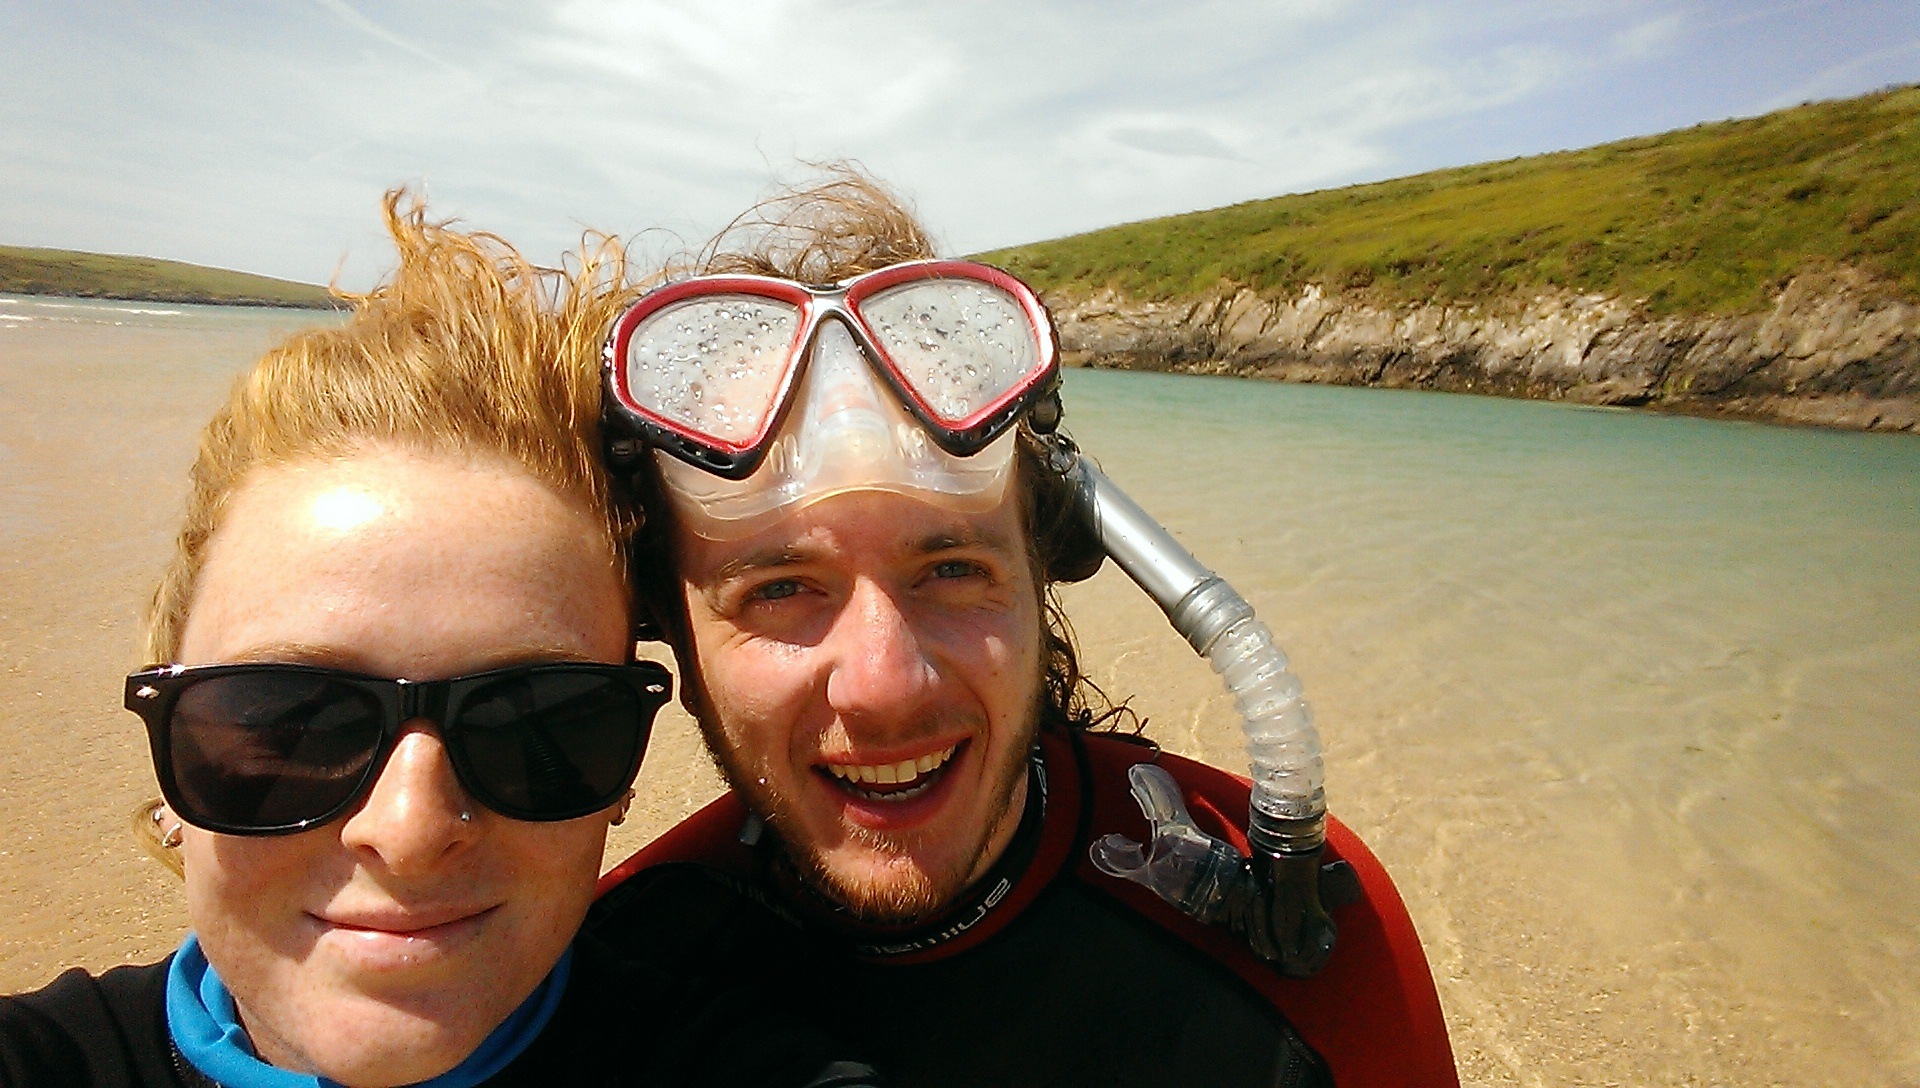 Despite being a lush warm day it was ridiculously windy and the beach sands whipped our face and legs!